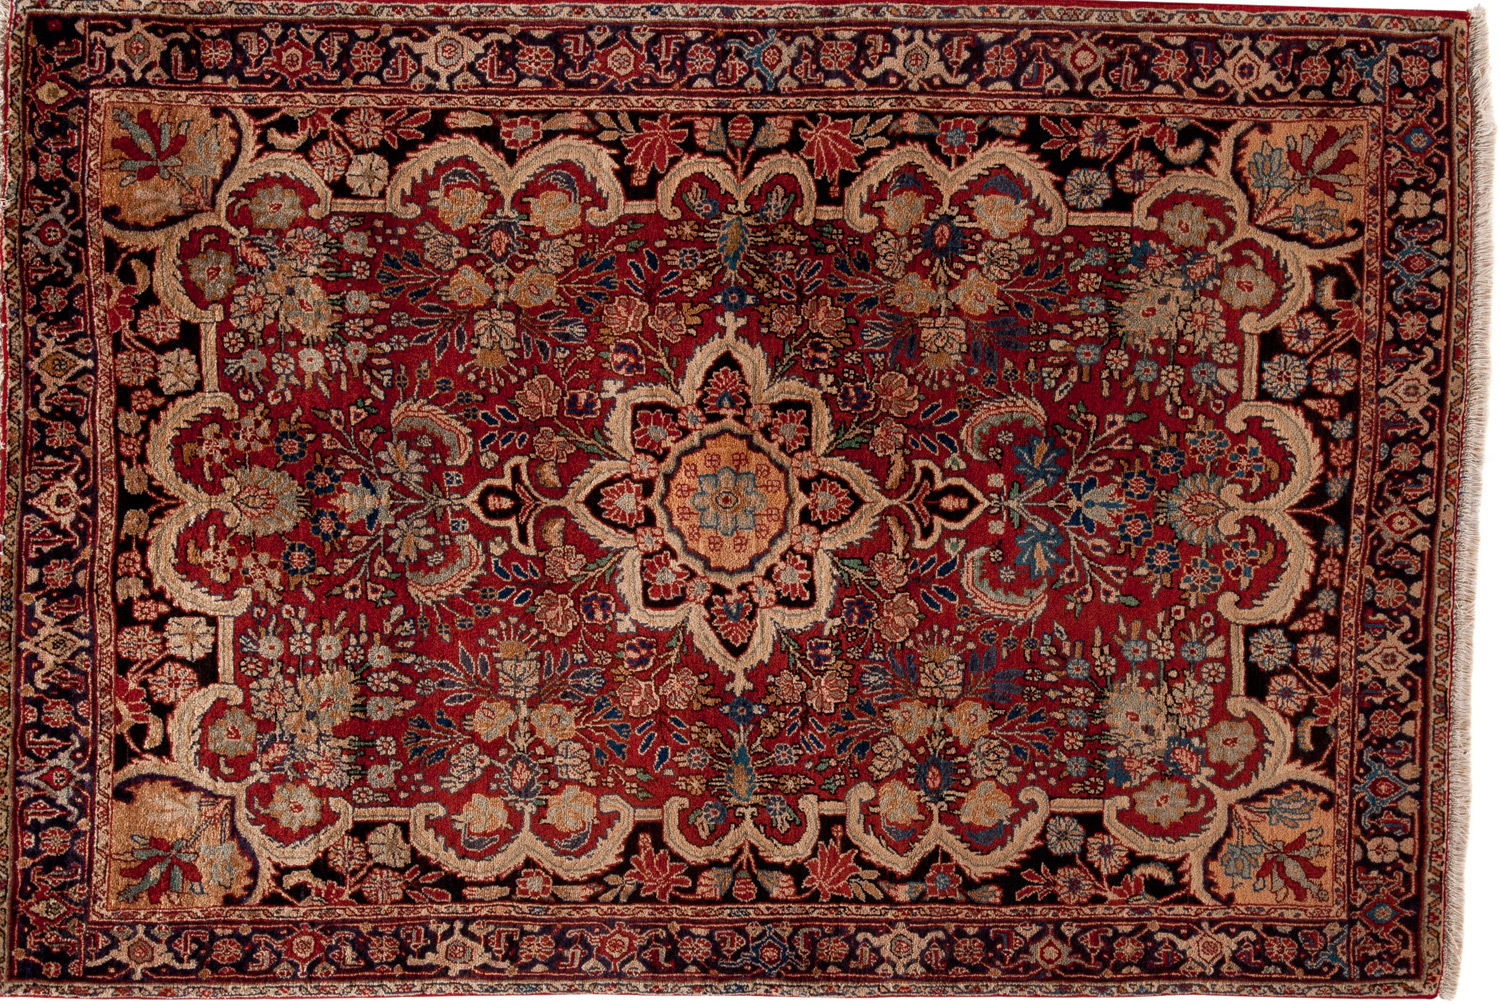 oriental persian carpet risalafurniture sale rug in quality abu high dubai buy uae handmade dhabi ae acroos carpets rugs for